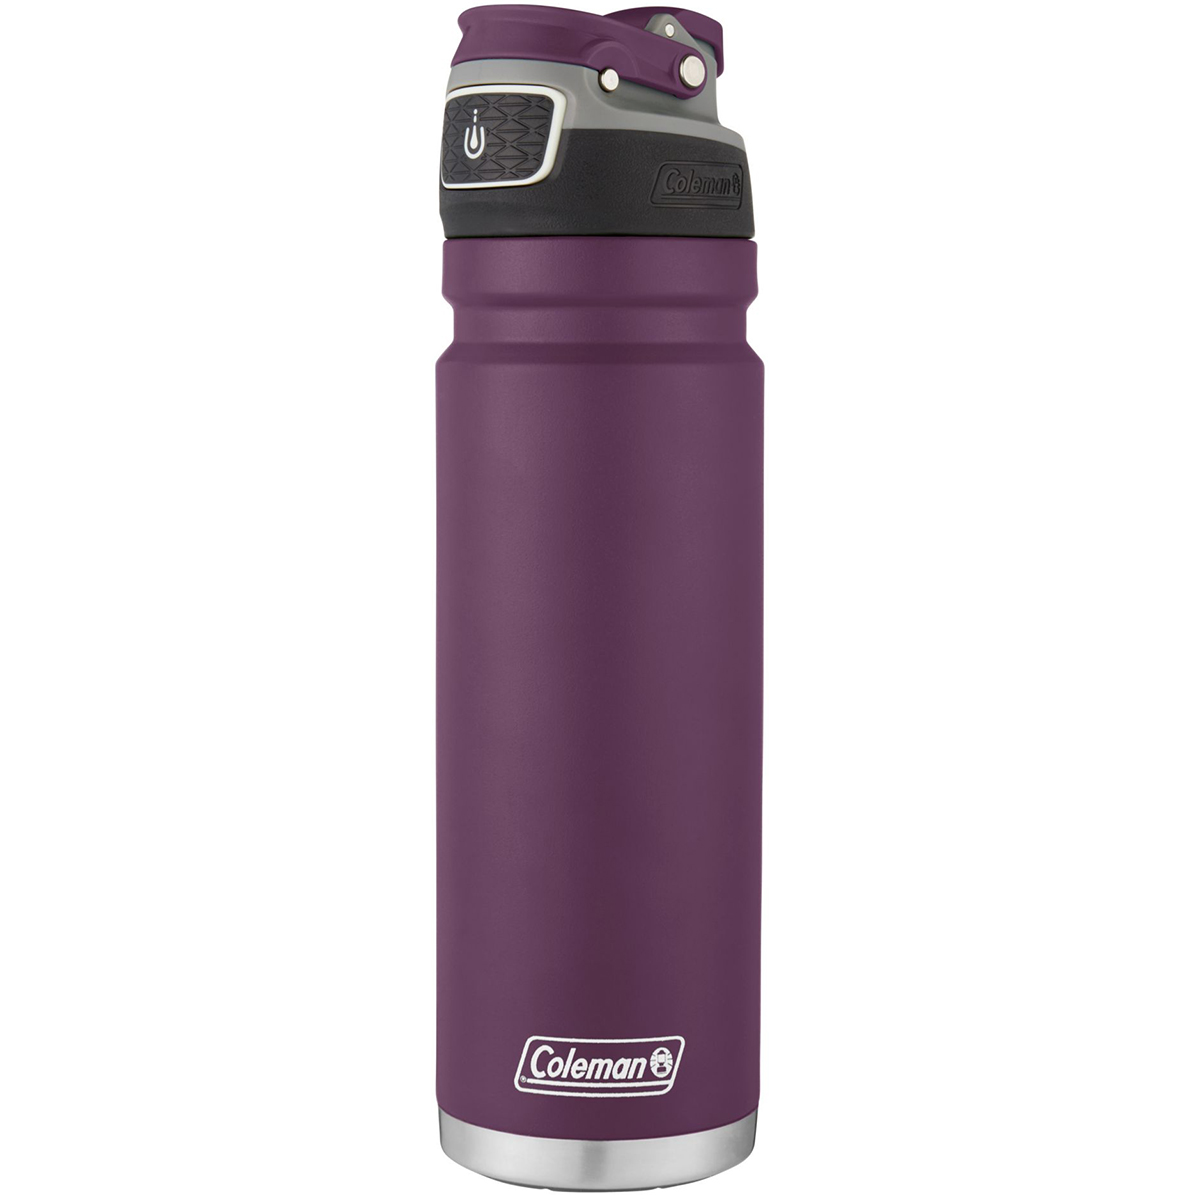 Coleman-24-oz-Free-Flow-Autoseal-Insulated-Stainless-Steel-Water-Bottle thumbnail 27